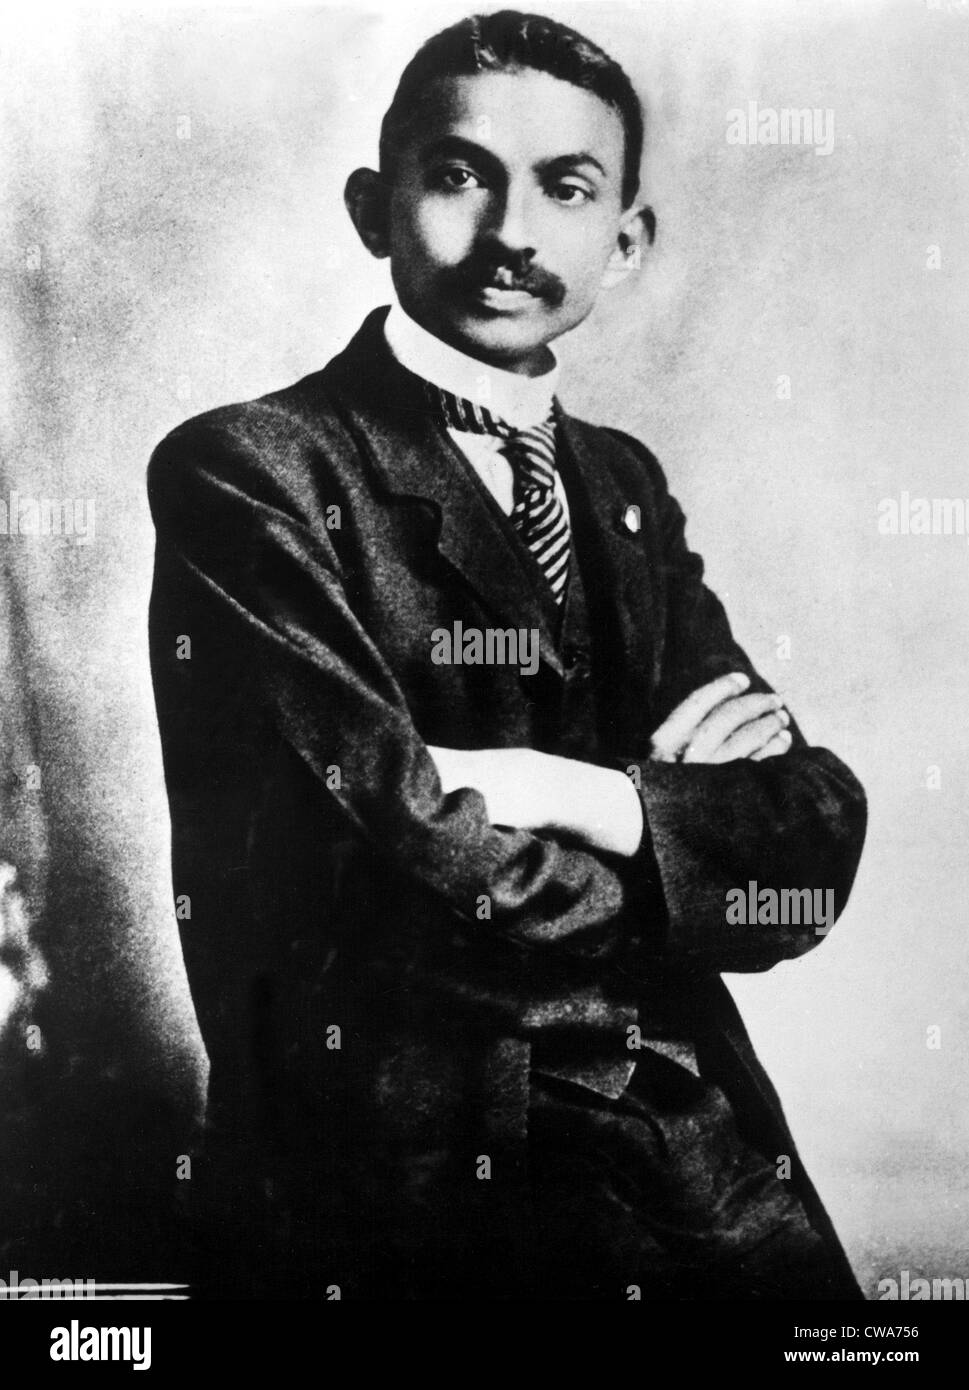 GANDHI as a Barrister, October 2, 1906.. Courtesy: CSU Archives / Everett Collection - Stock Image